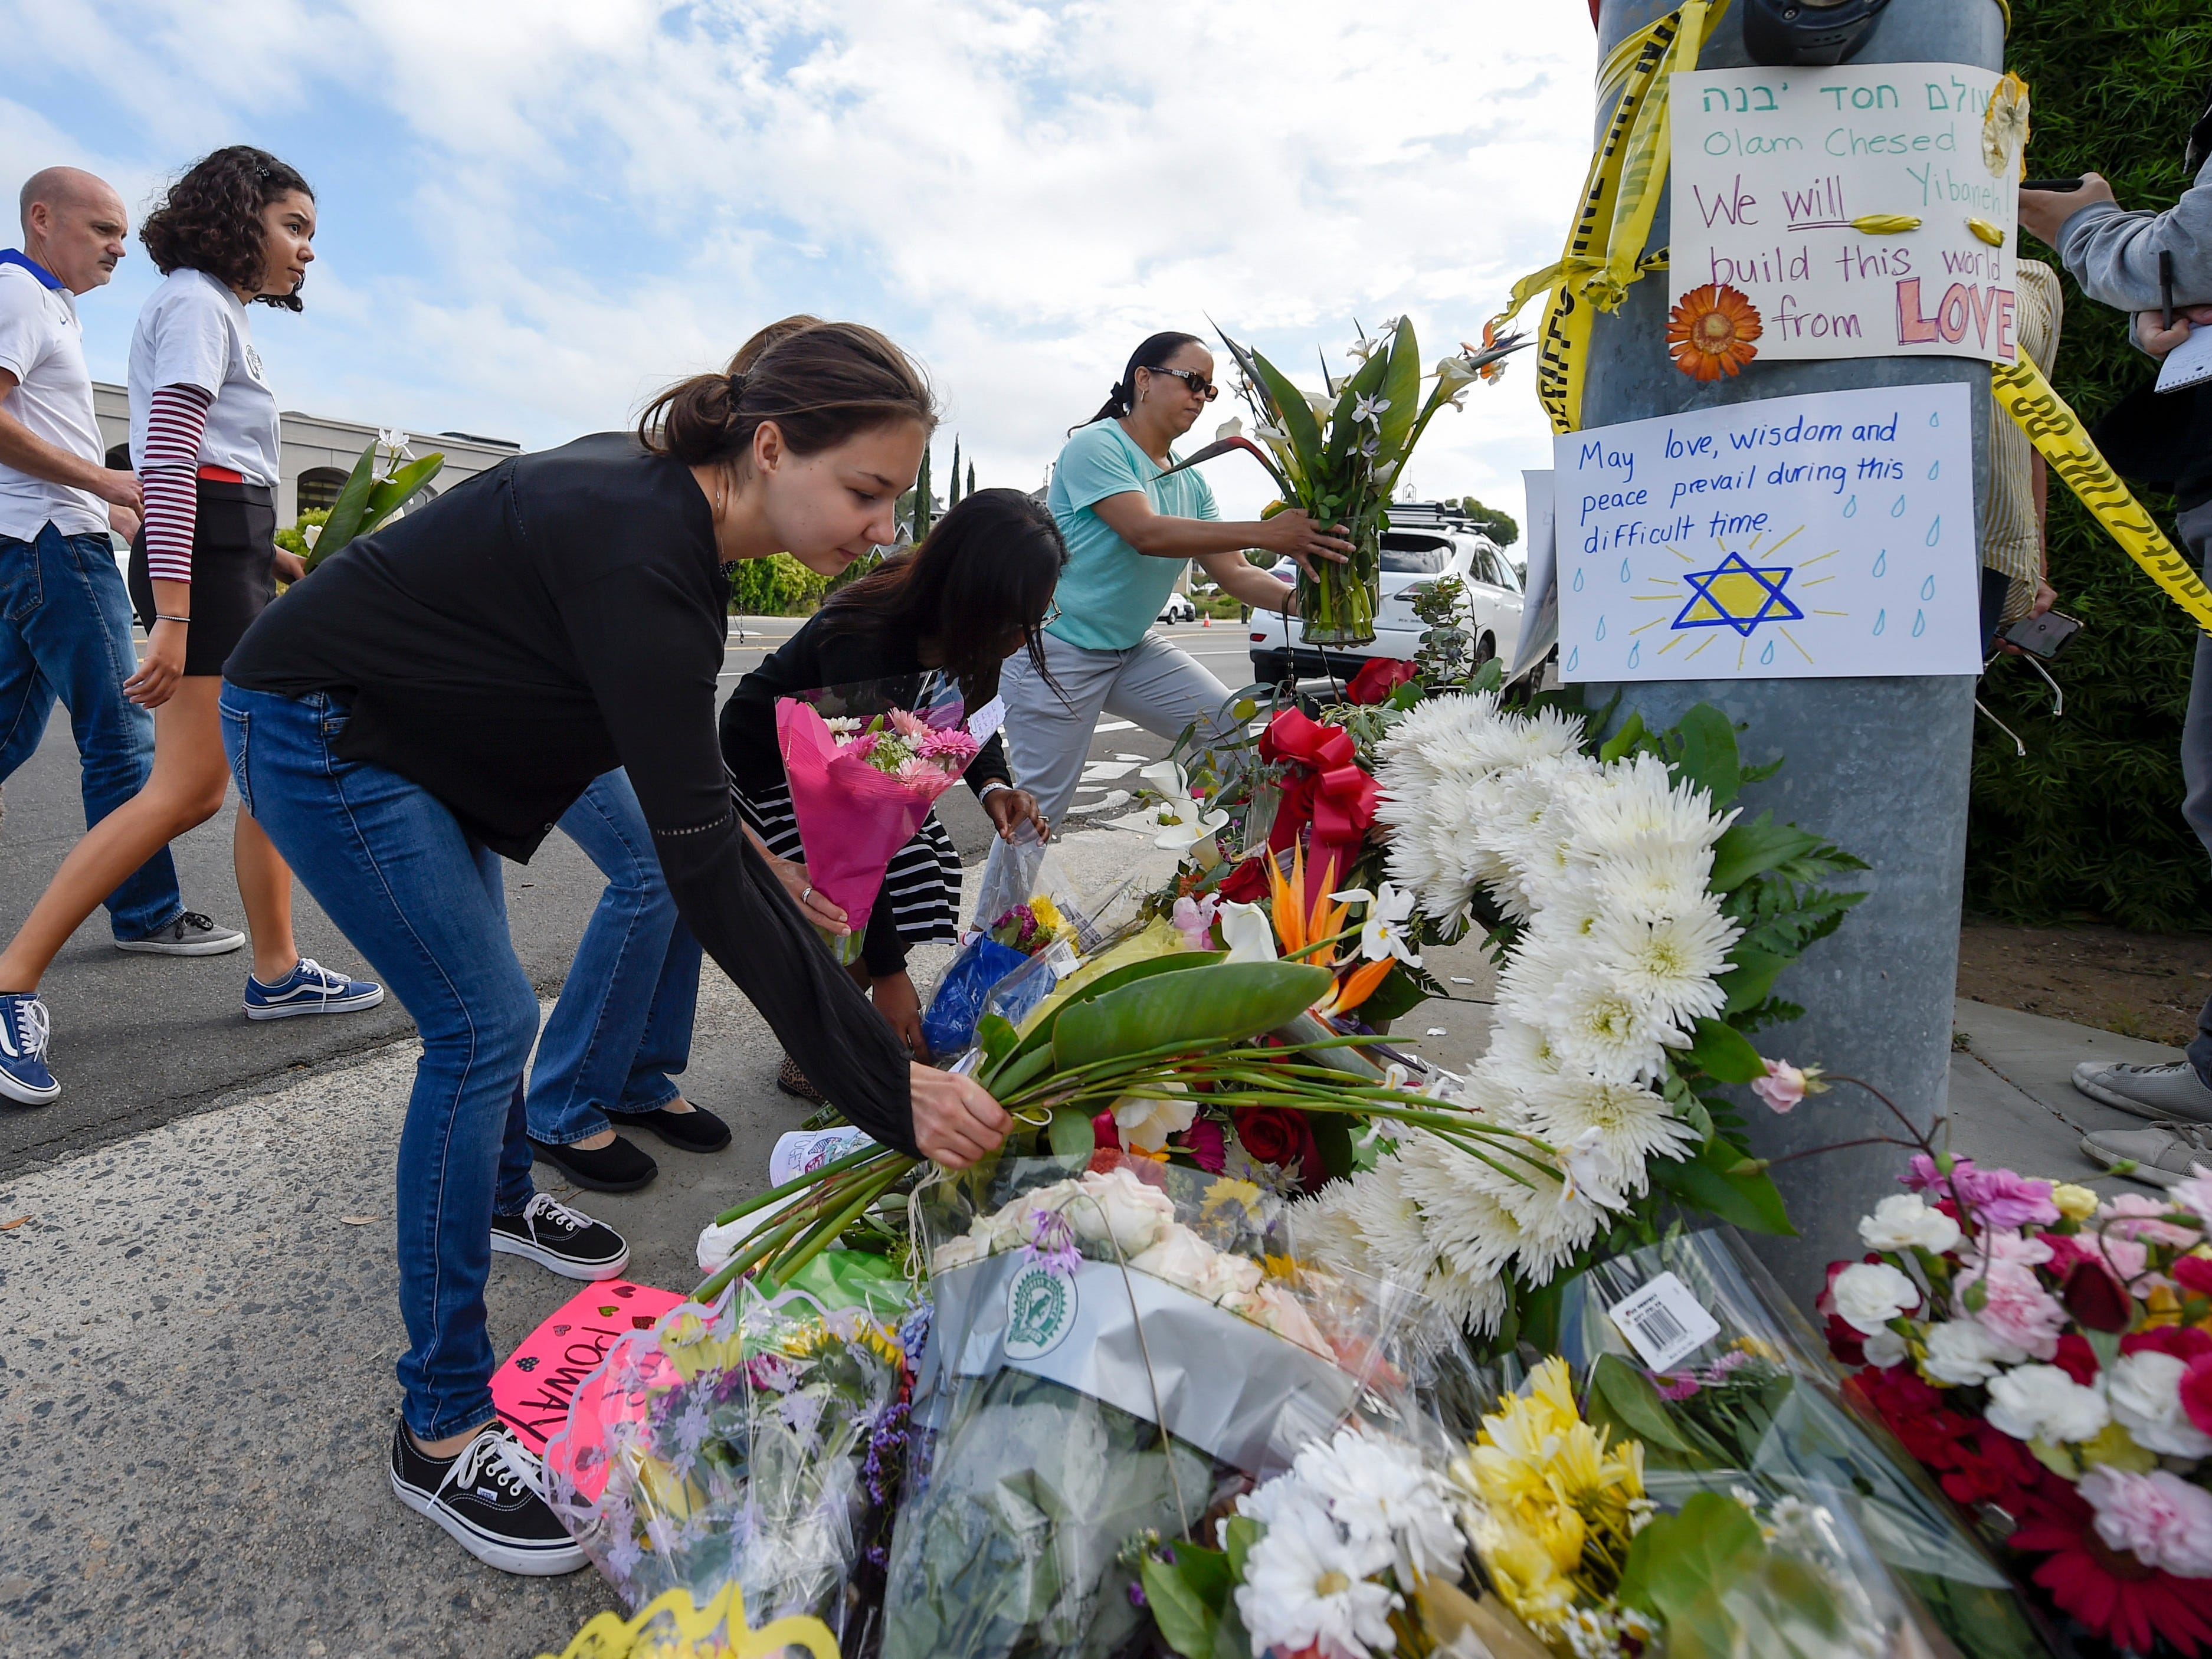 A group of Poway residents bring flowers and cards to a memorial outside of the Chabad of Poway synagogue, Sunday, April 28, 2019, in Poway, Calif. A man opened fire Saturday inside the synagogue near San Diego as worshippers celebrated the last day of a major Jewish holiday. (AP Photo/Denis Poroy) (AP Photo/Denis Poroy) ORG XMIT: CADP113